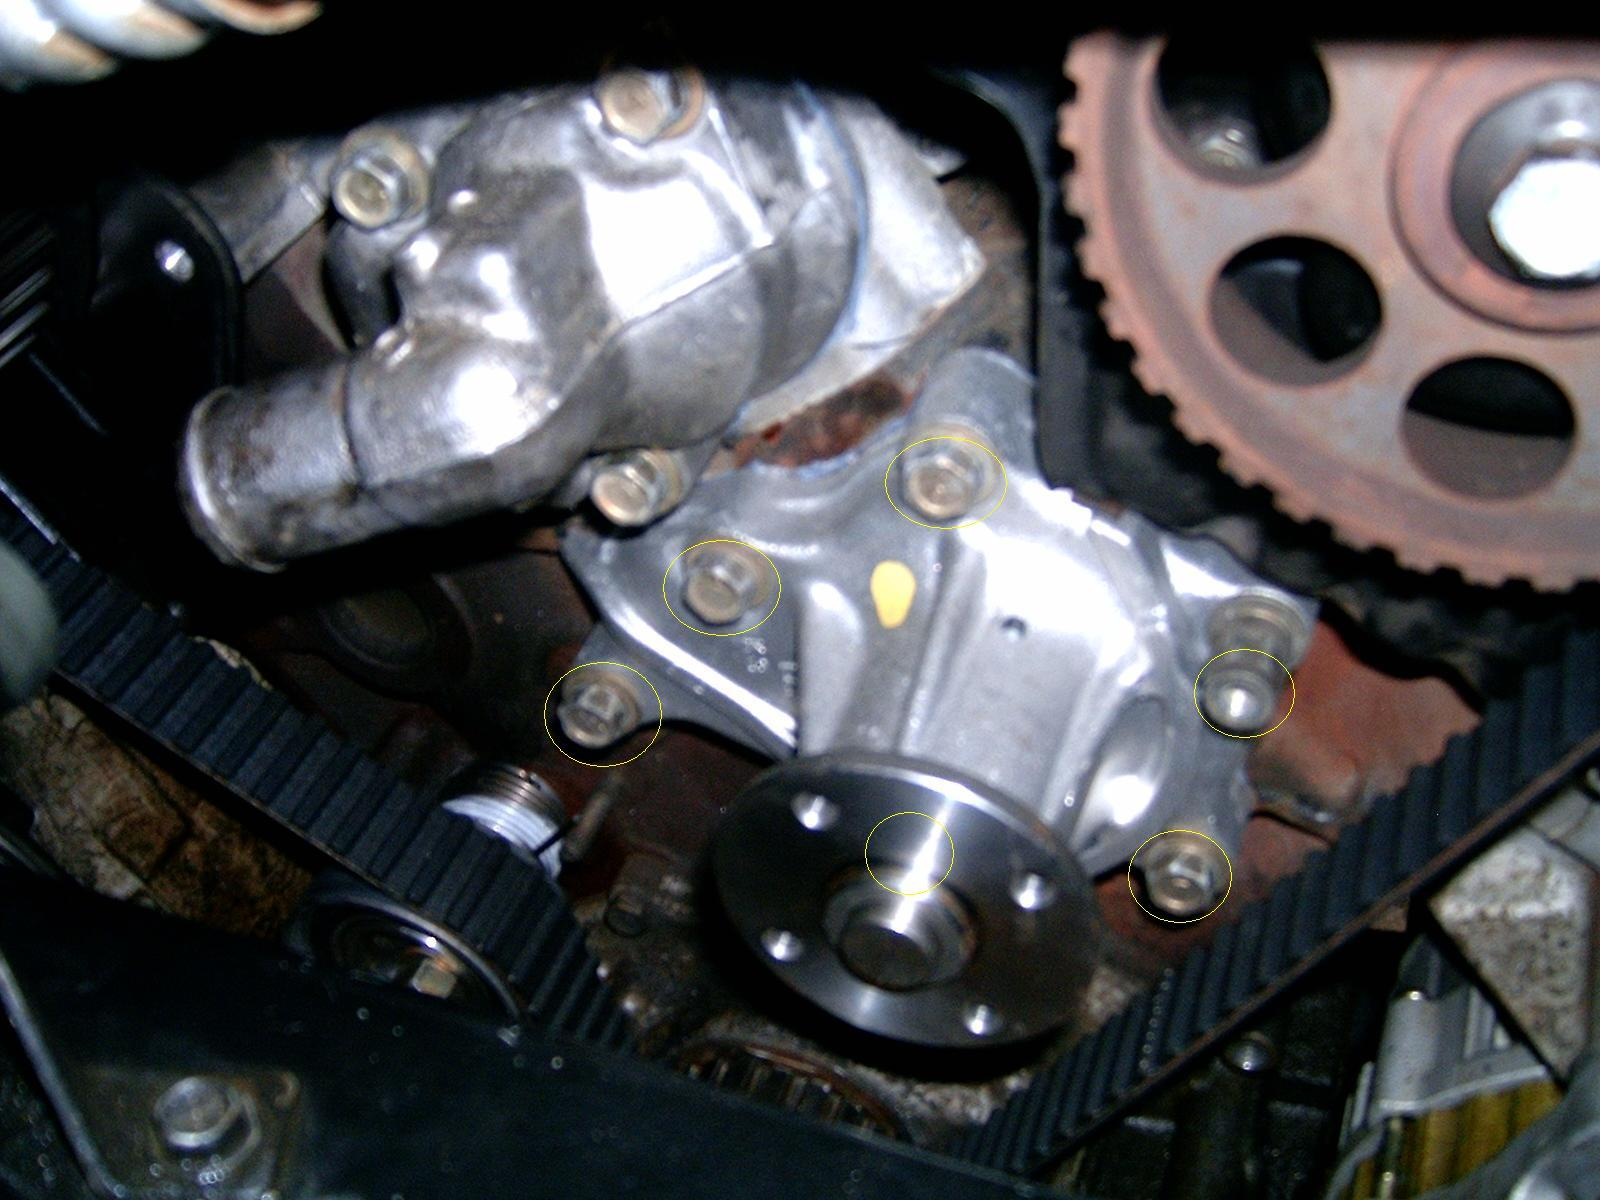 Air Pump Replacement Cost further Discussion D665 ds516642 in addition Nissan Maxima Location further 2004 Jeep Grand Cherokee Engine Diagram Water Pump as well Cooling System Maintenance. on nissan fuel pump replacement cost